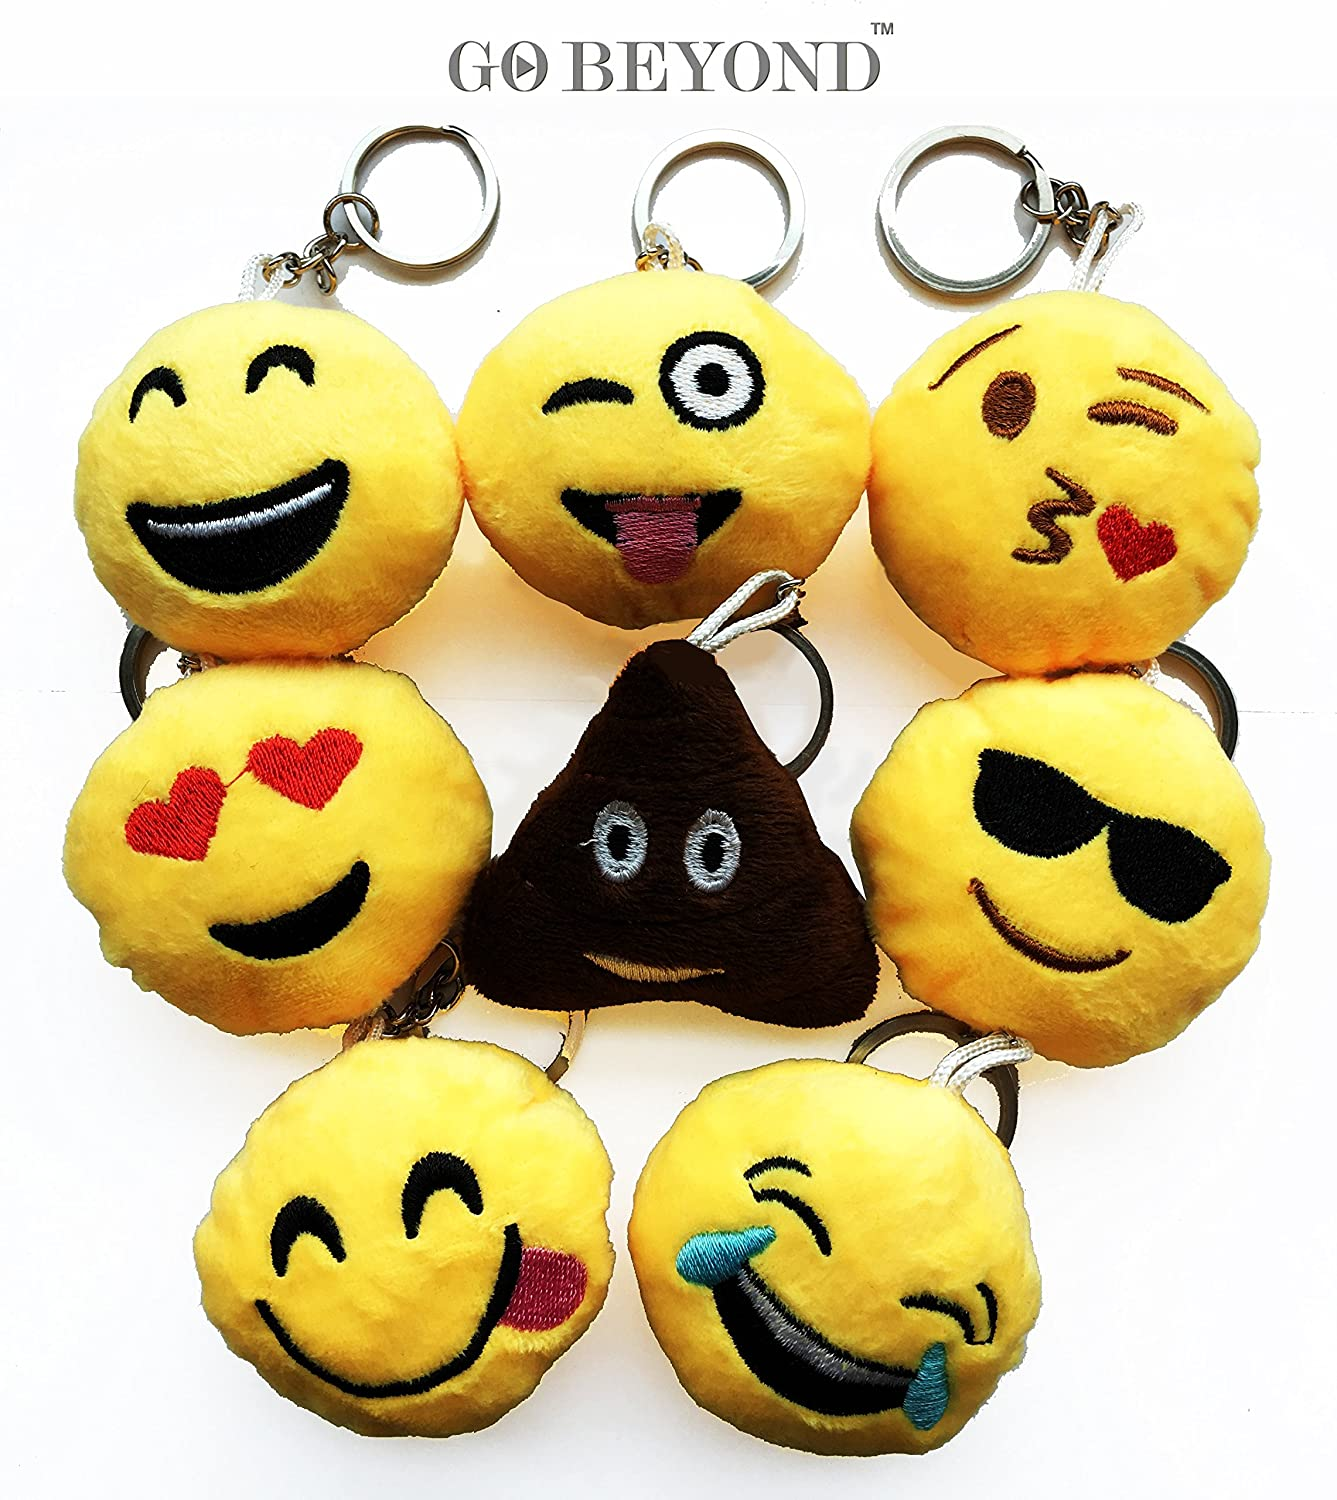 8pcs Emoji Smiley Emoticon Cushion Stuffed Plush Toy Doll KeyChain